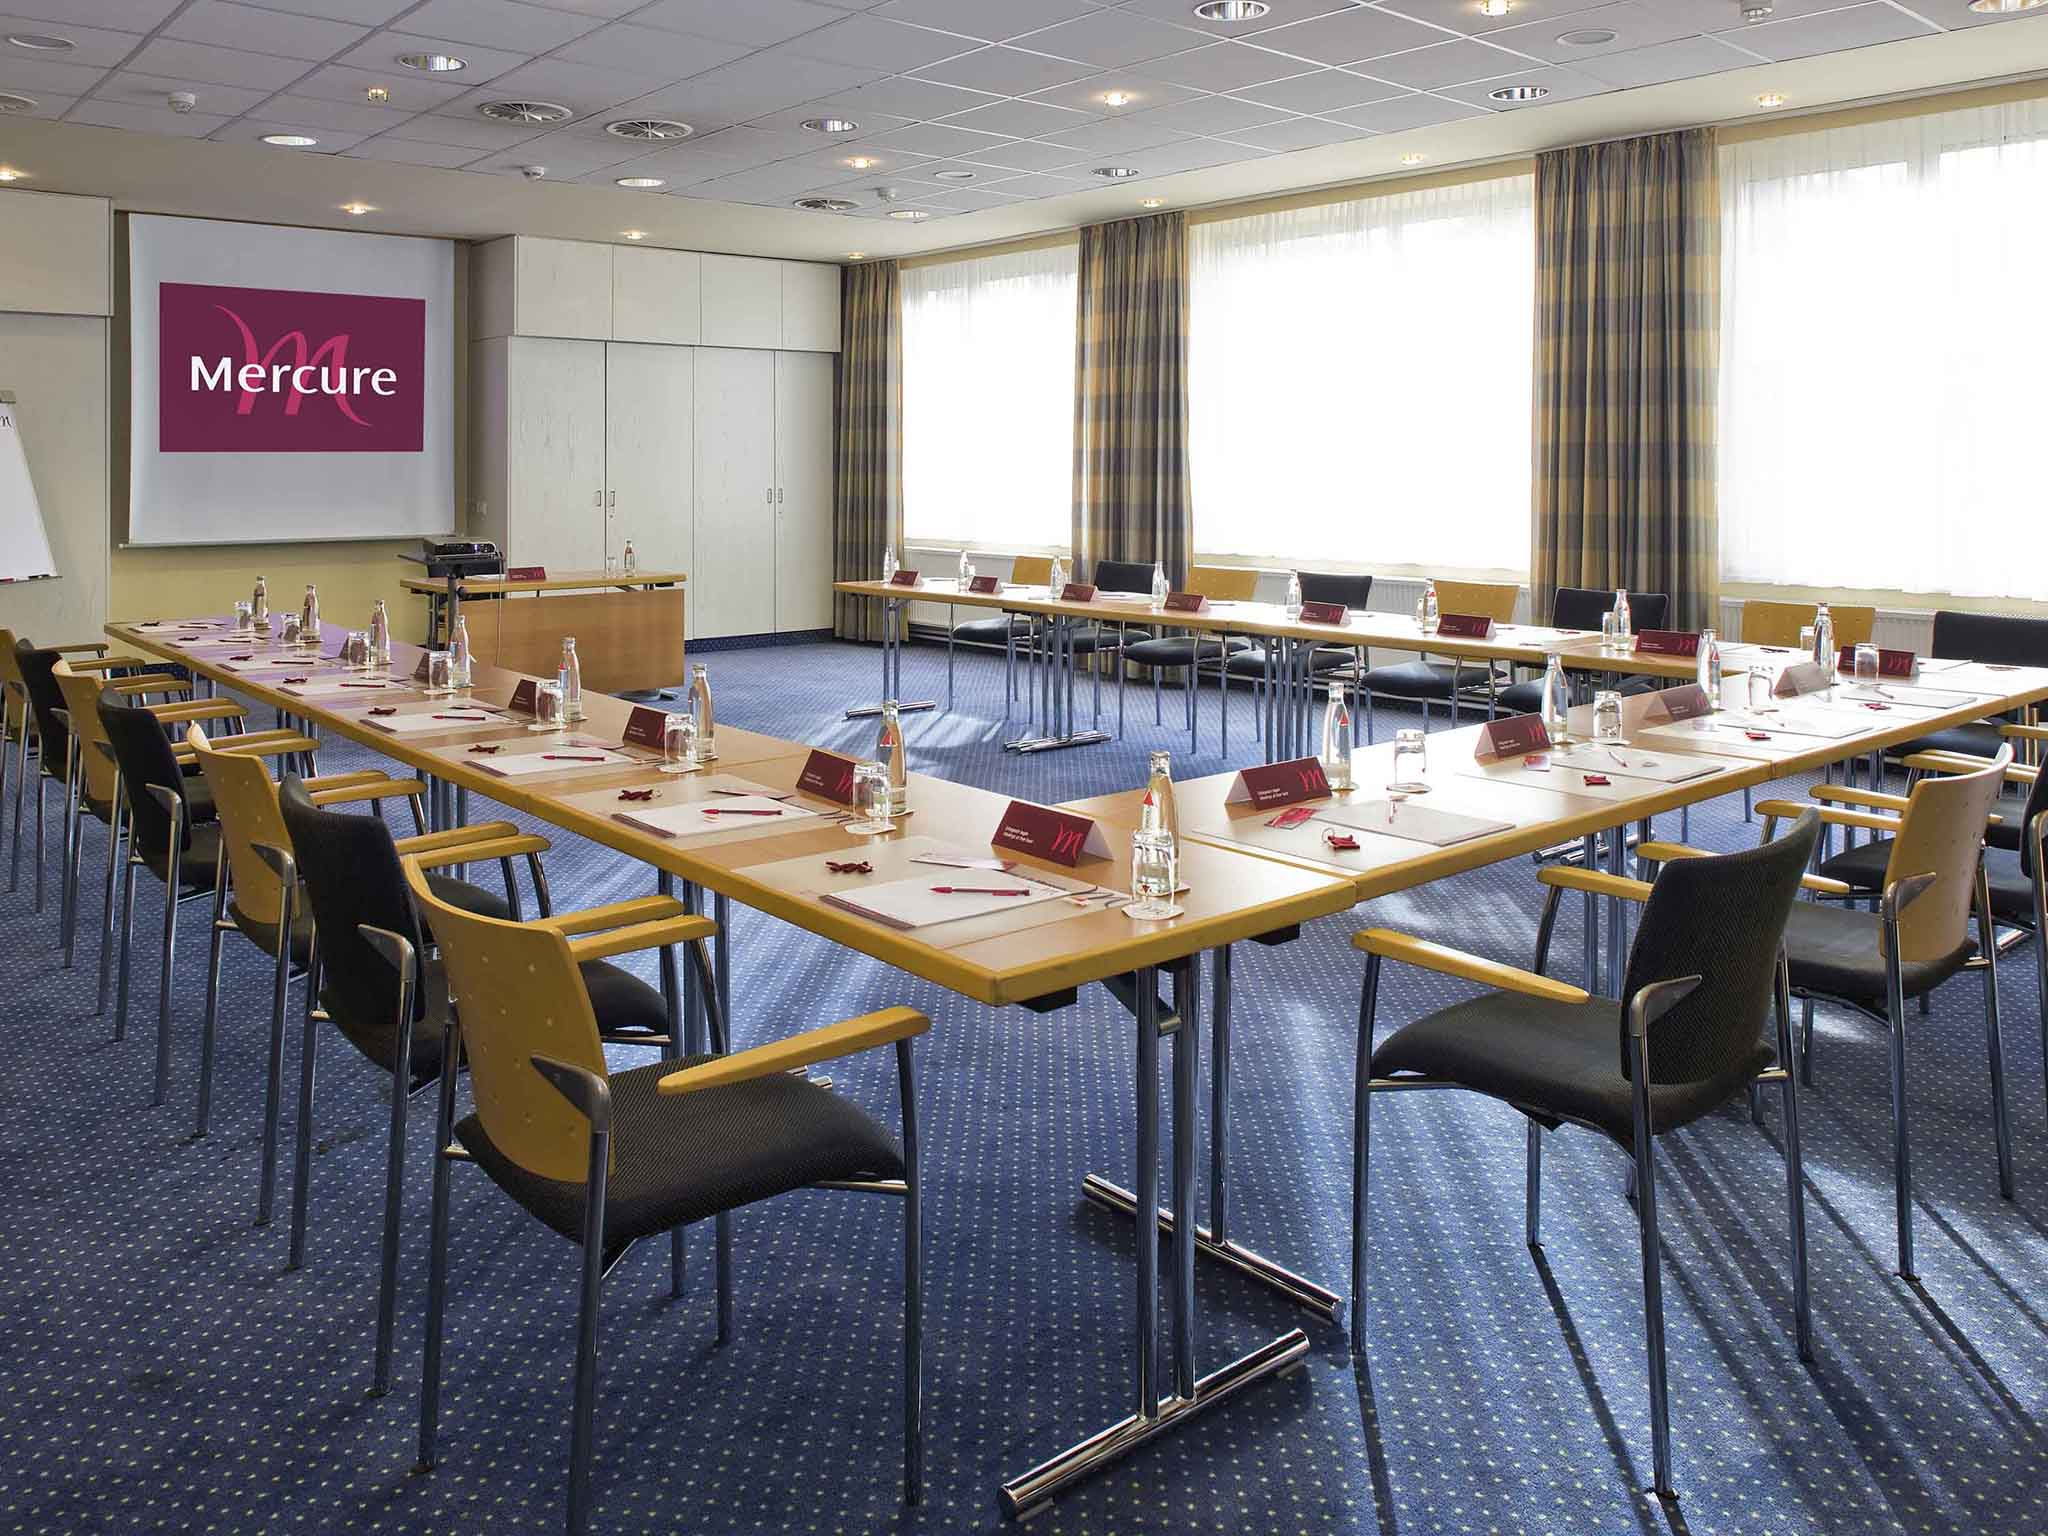 ... Meetings And Events   Mercure Hotel Bad Homburg Friedrichsdorf ...